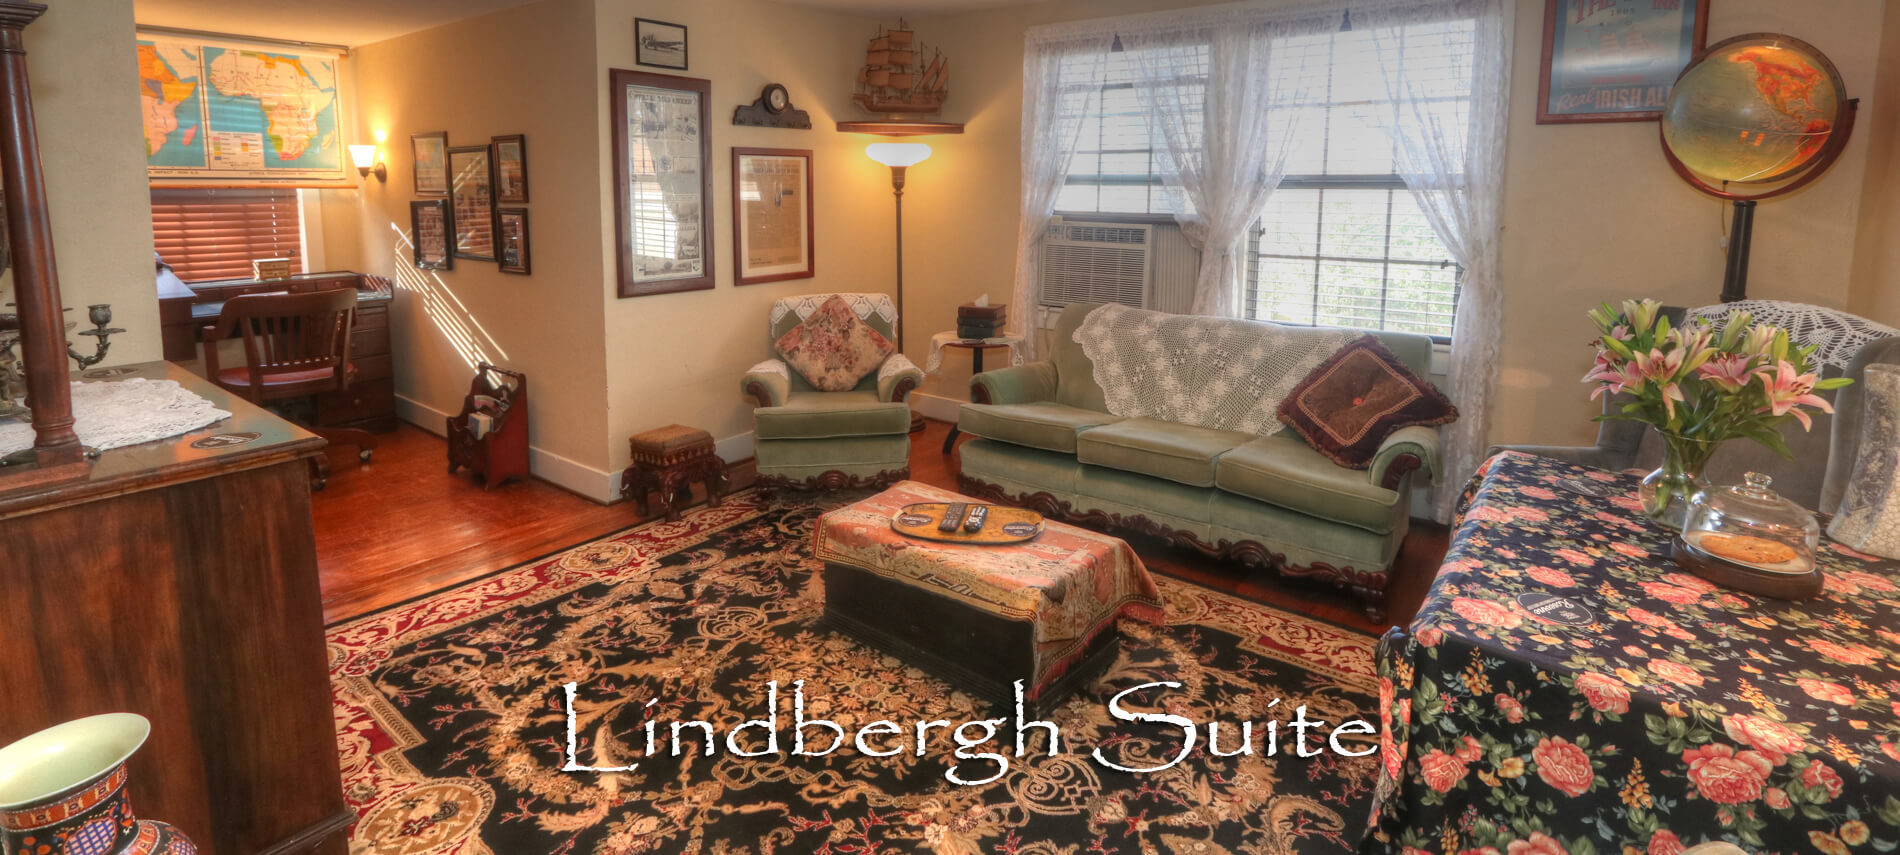 Vintage Living Room in the Lindbergh Suite with Green couches and antique wall hangings